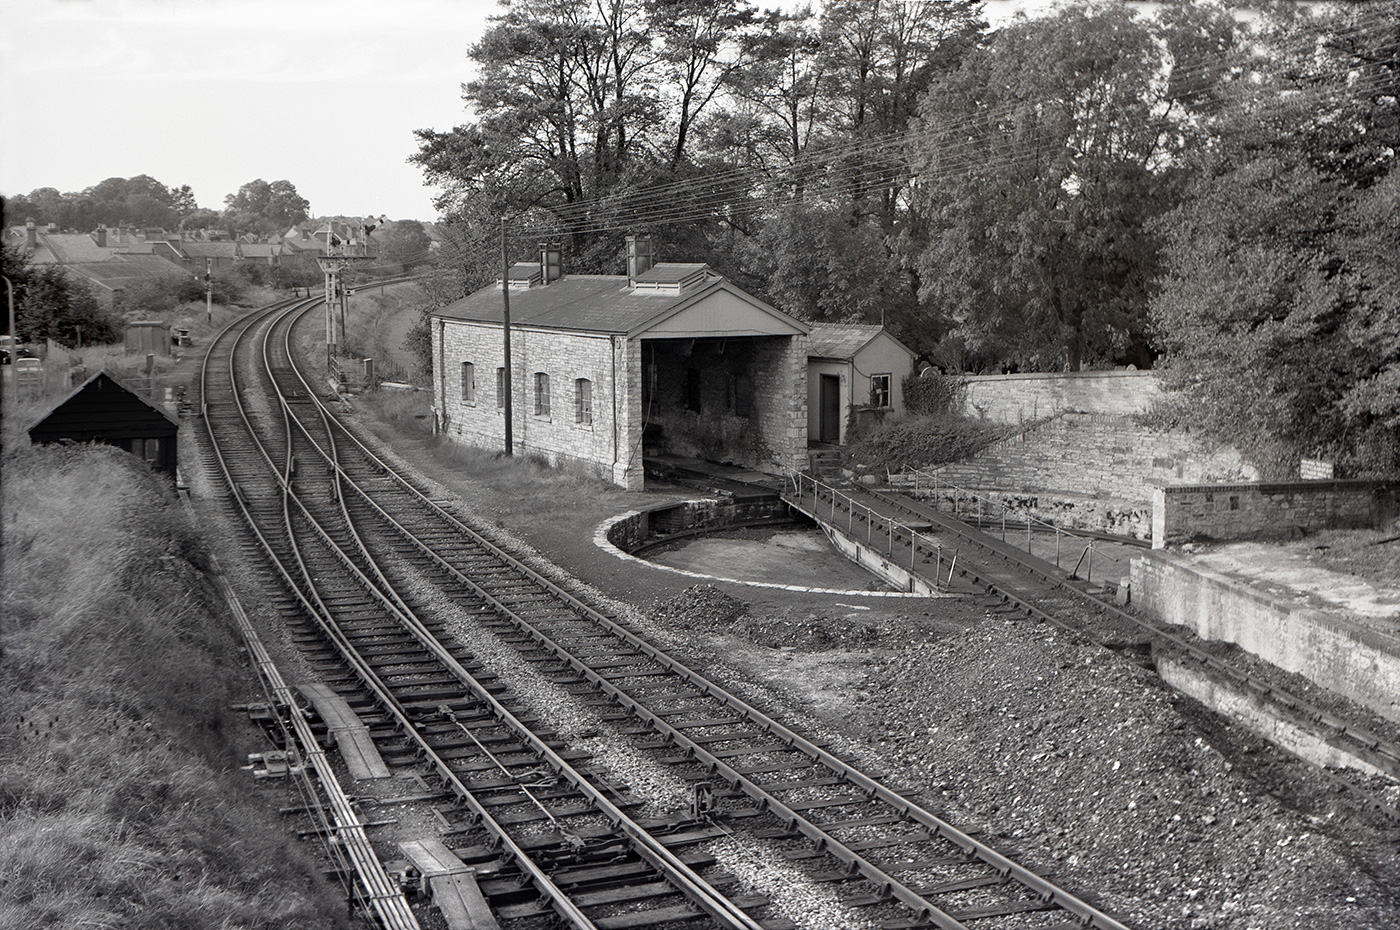 Swanage Railway Turntable in 1966